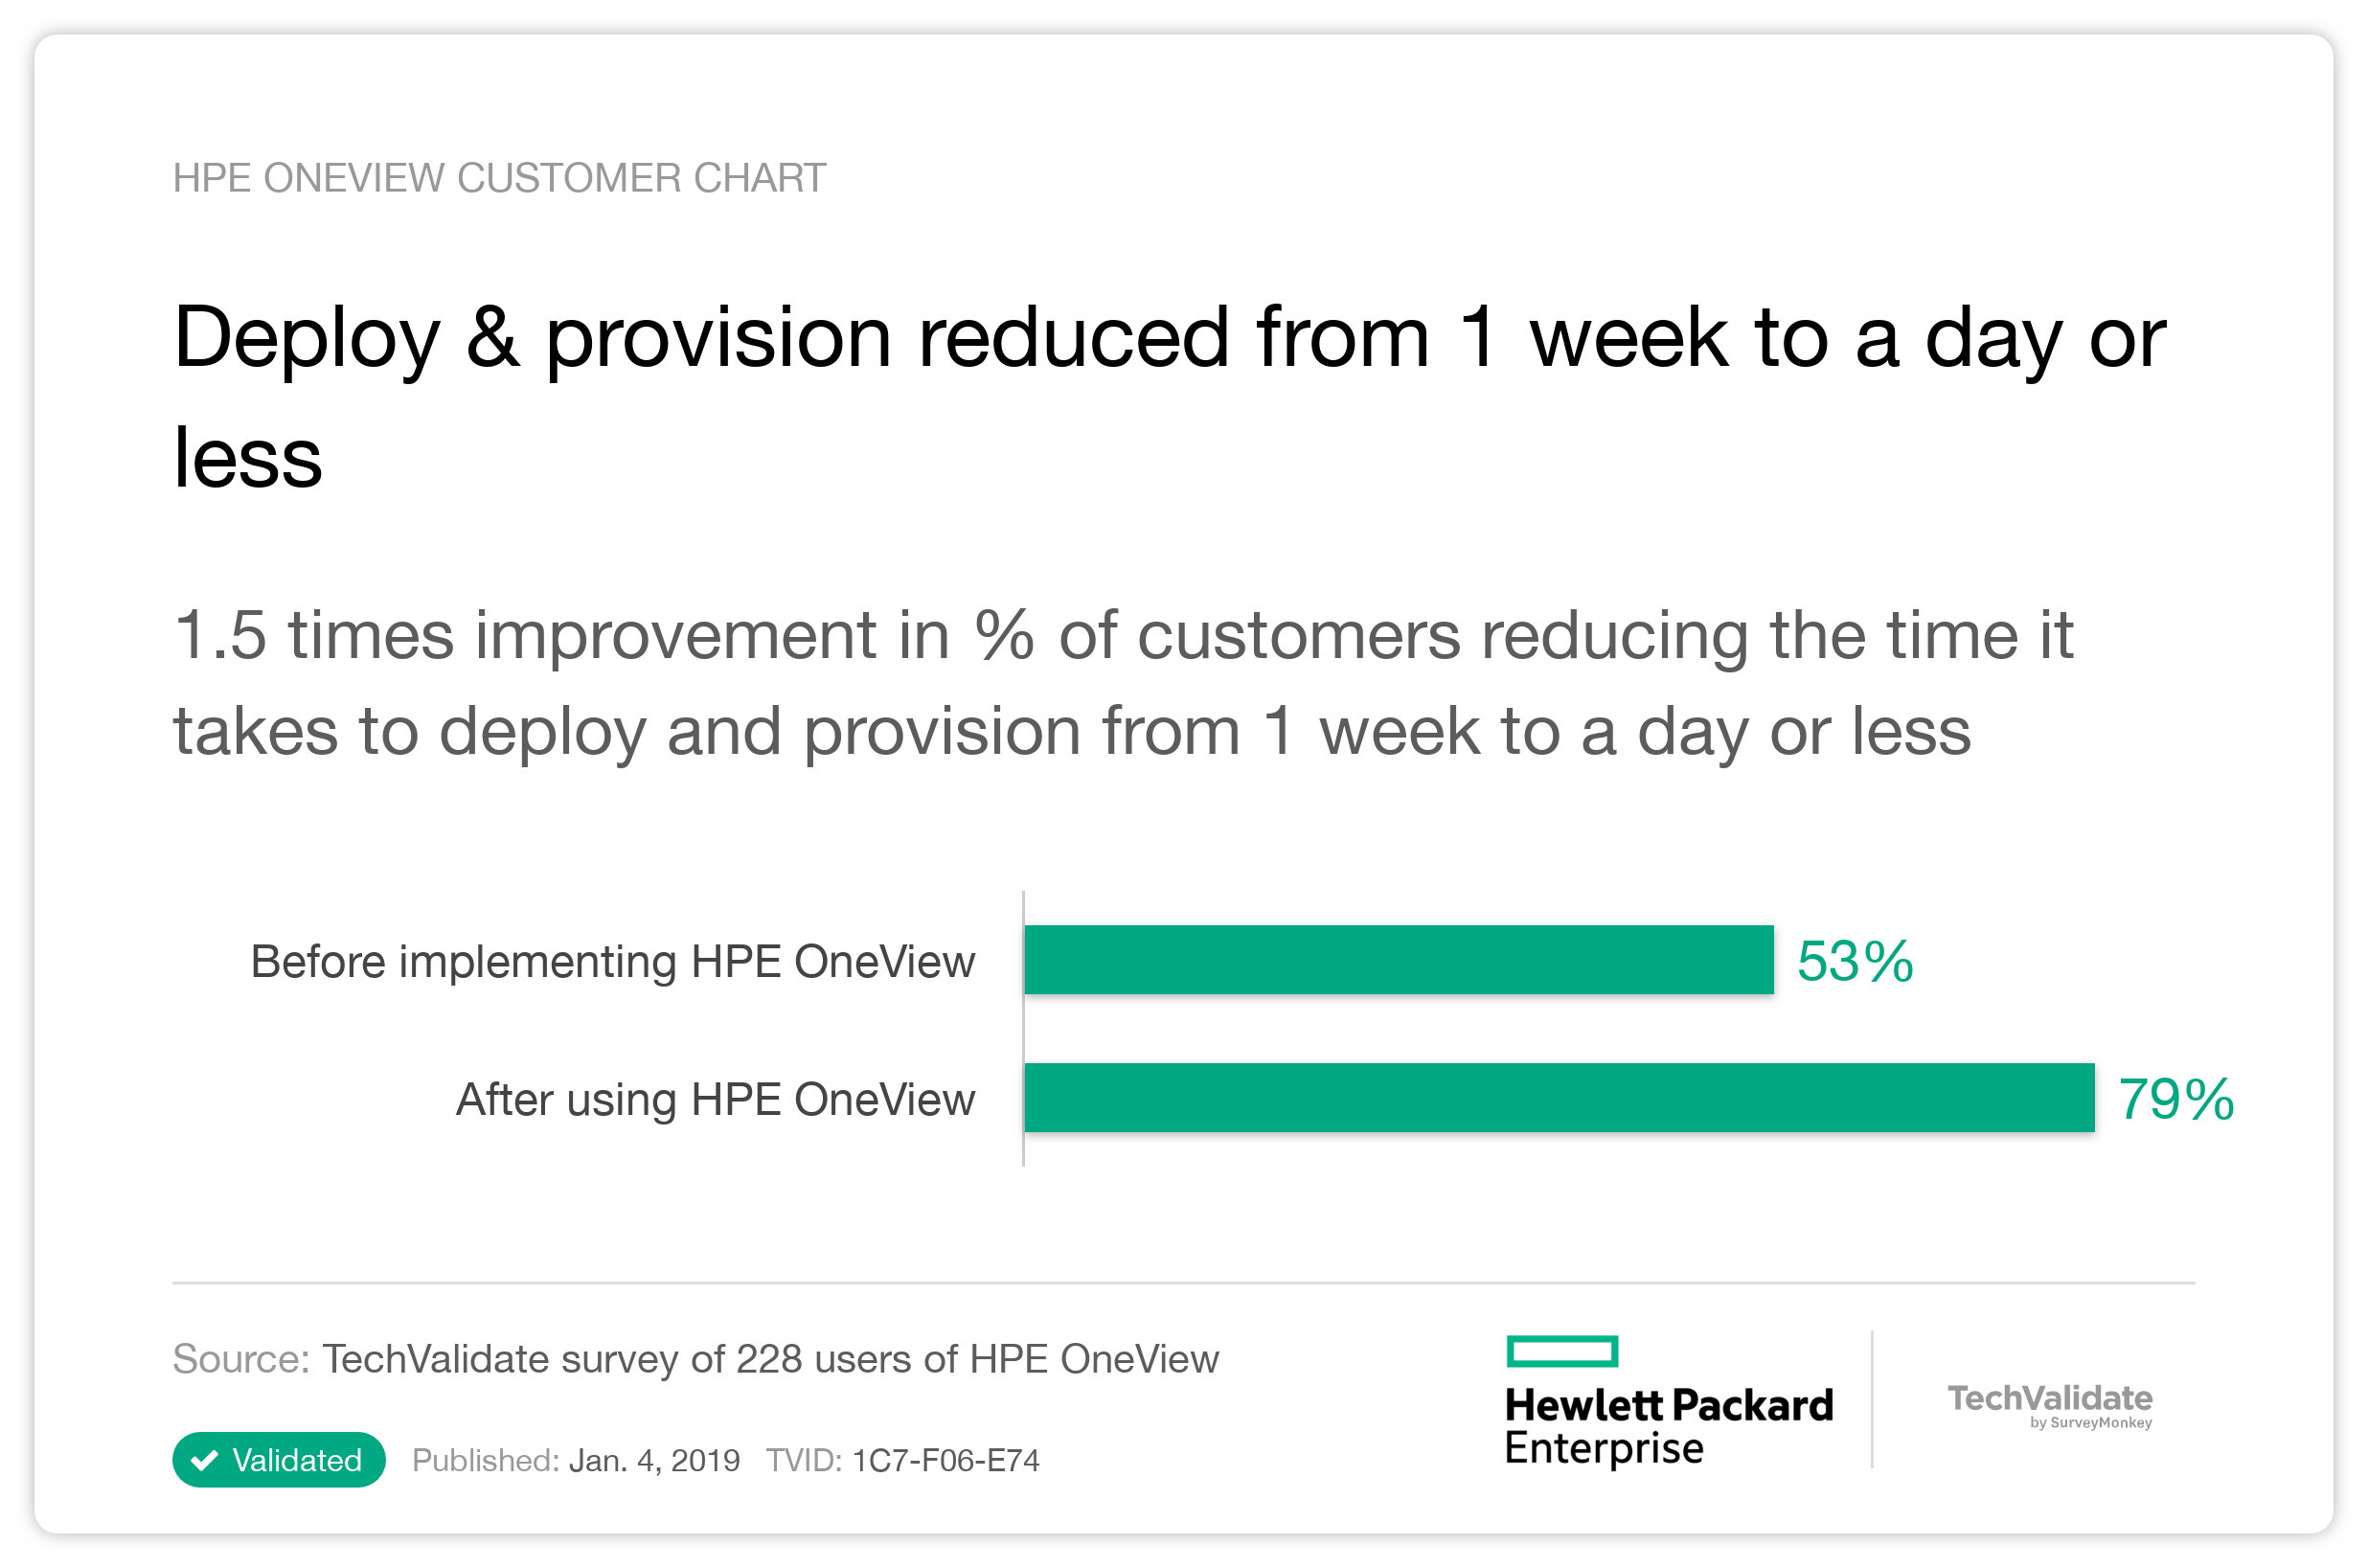 Deploy & provision reduced from 1 week to a day or less